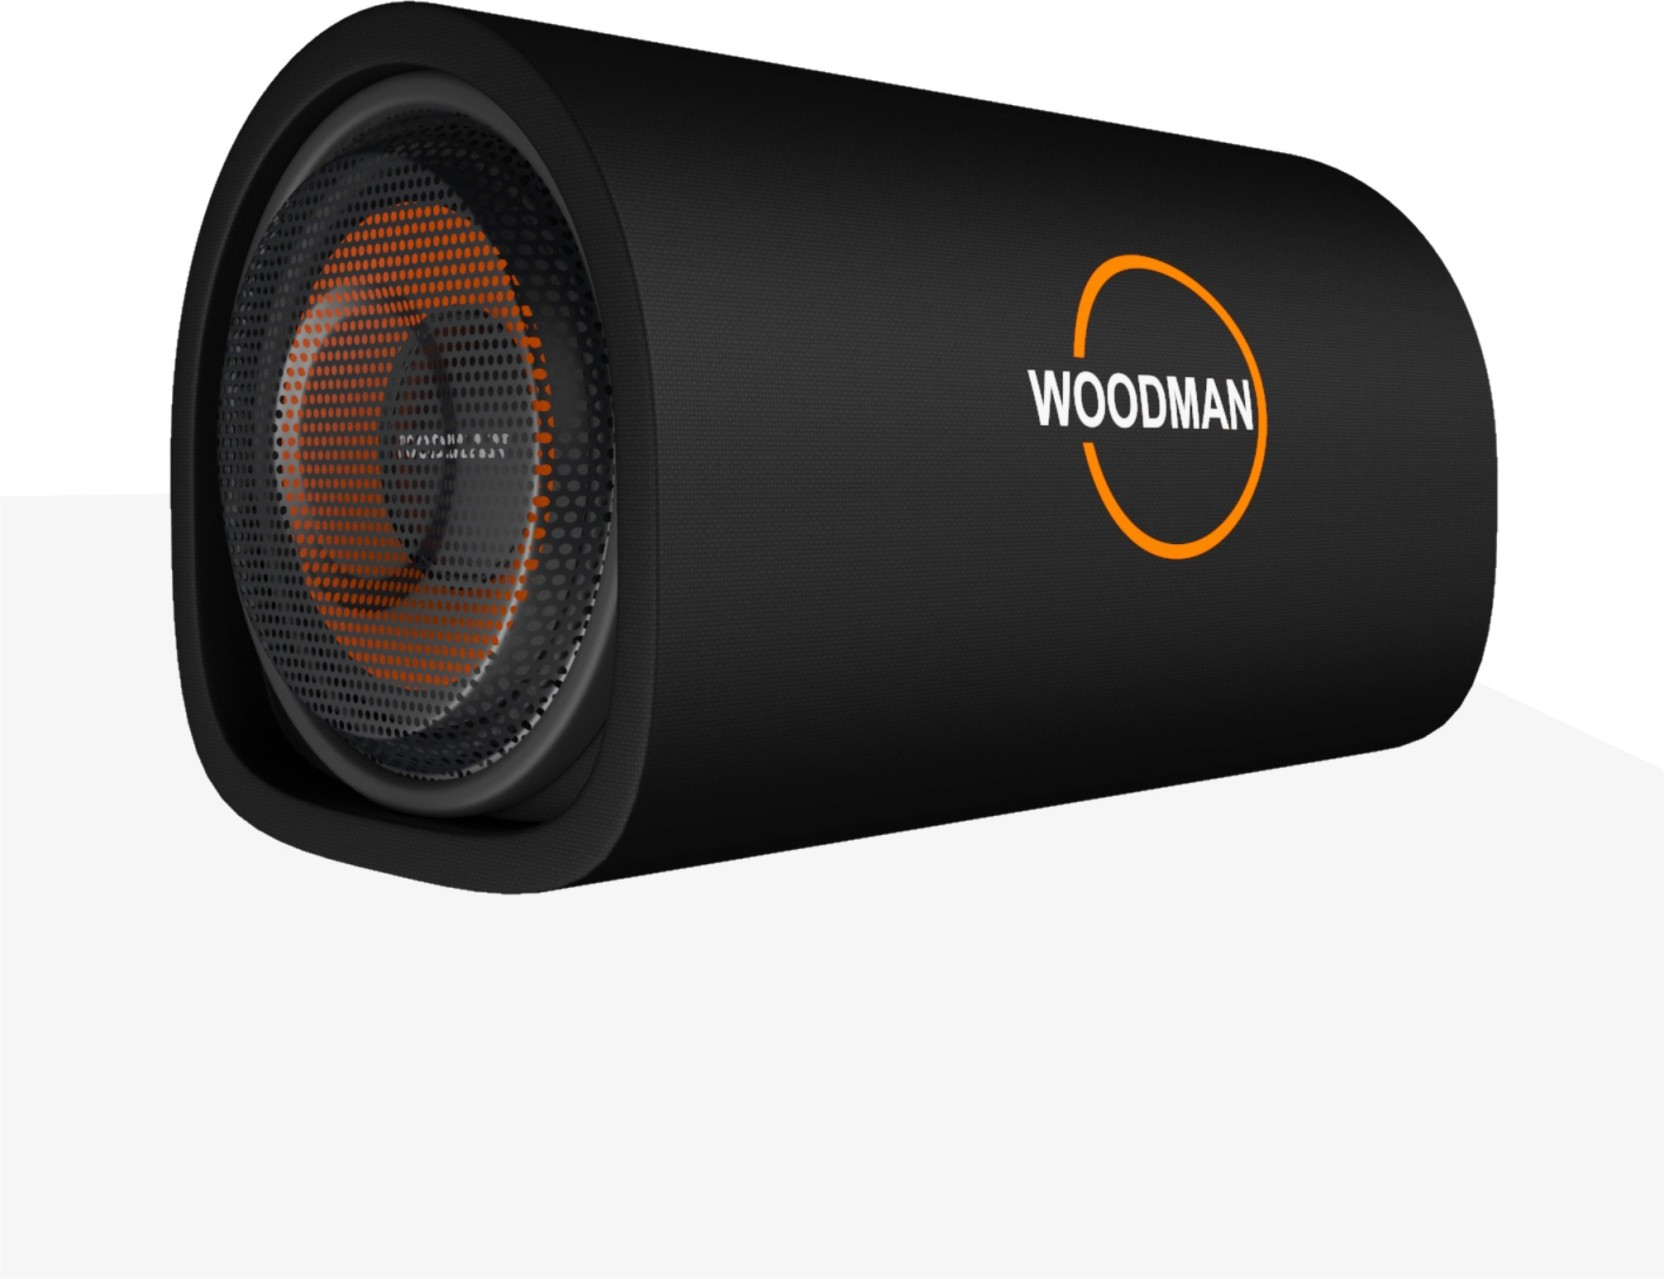 Woodman Bt12 12 Inch Basstube With Inbuilt Amplifier Subwoofer Price 10 Single Car Bass Box 1200w Package Wiring Kit Add To Cart